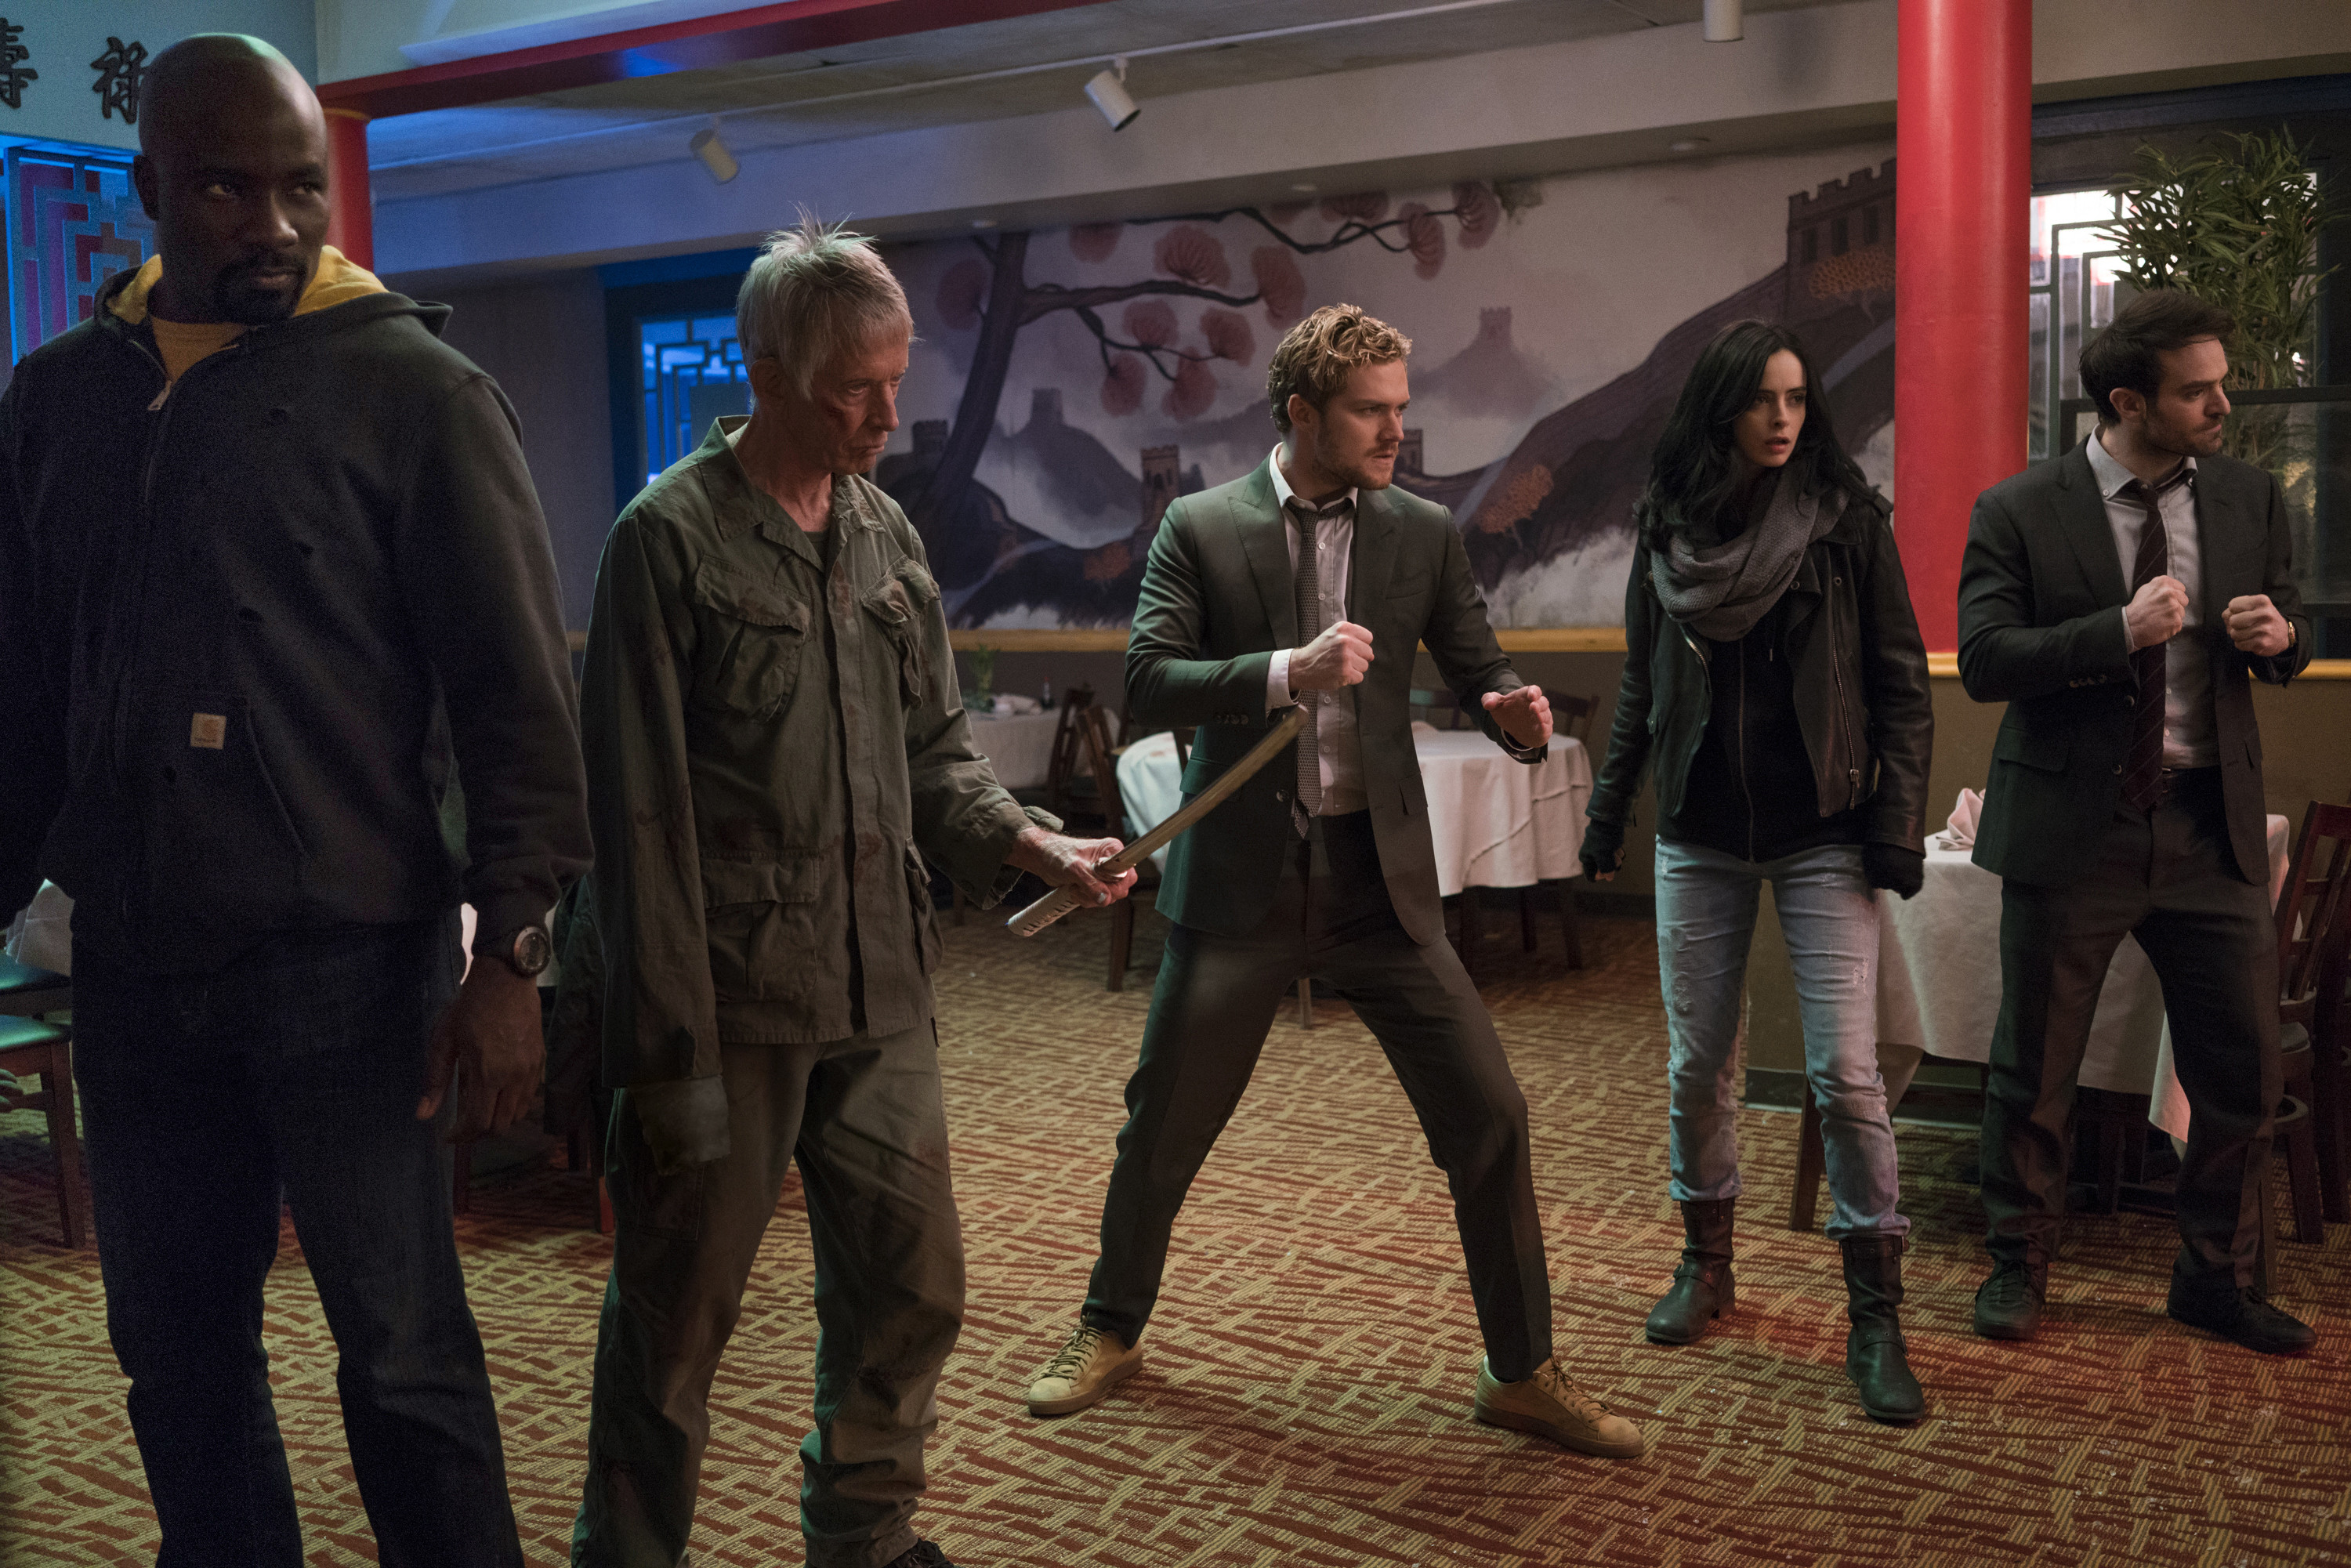 We Just Saw the First Episode for Marvel's'The Defenders — Here's What to Expect